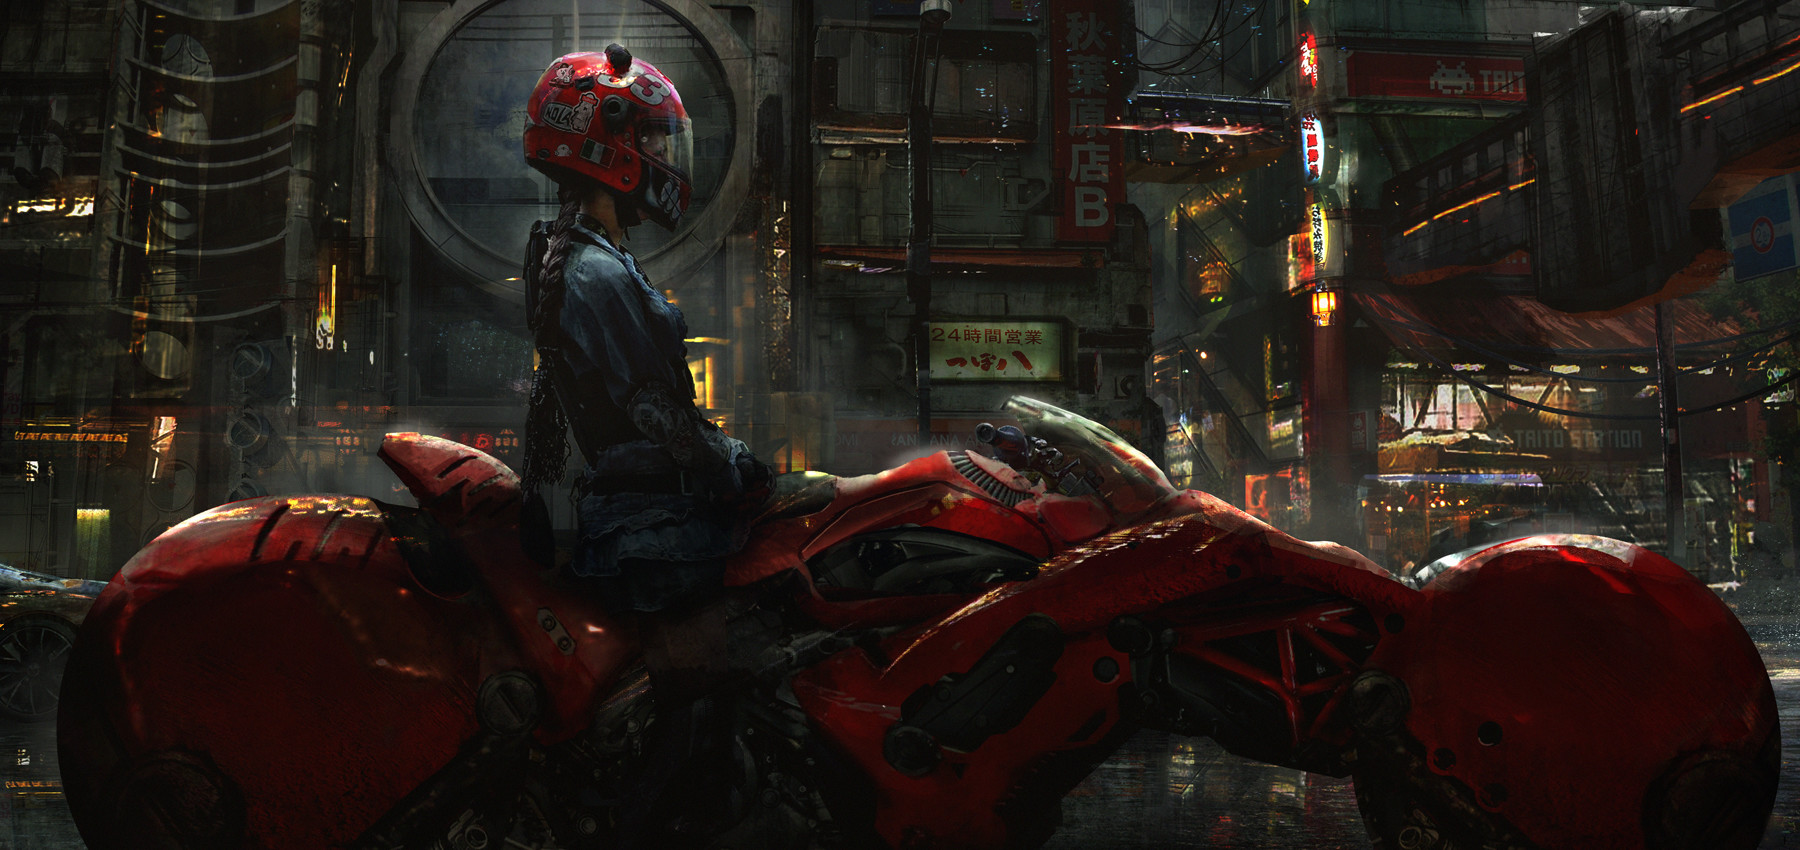 Welcome to the Awesome Cyberpunk Art of Concept Artist Eddie Mendoza